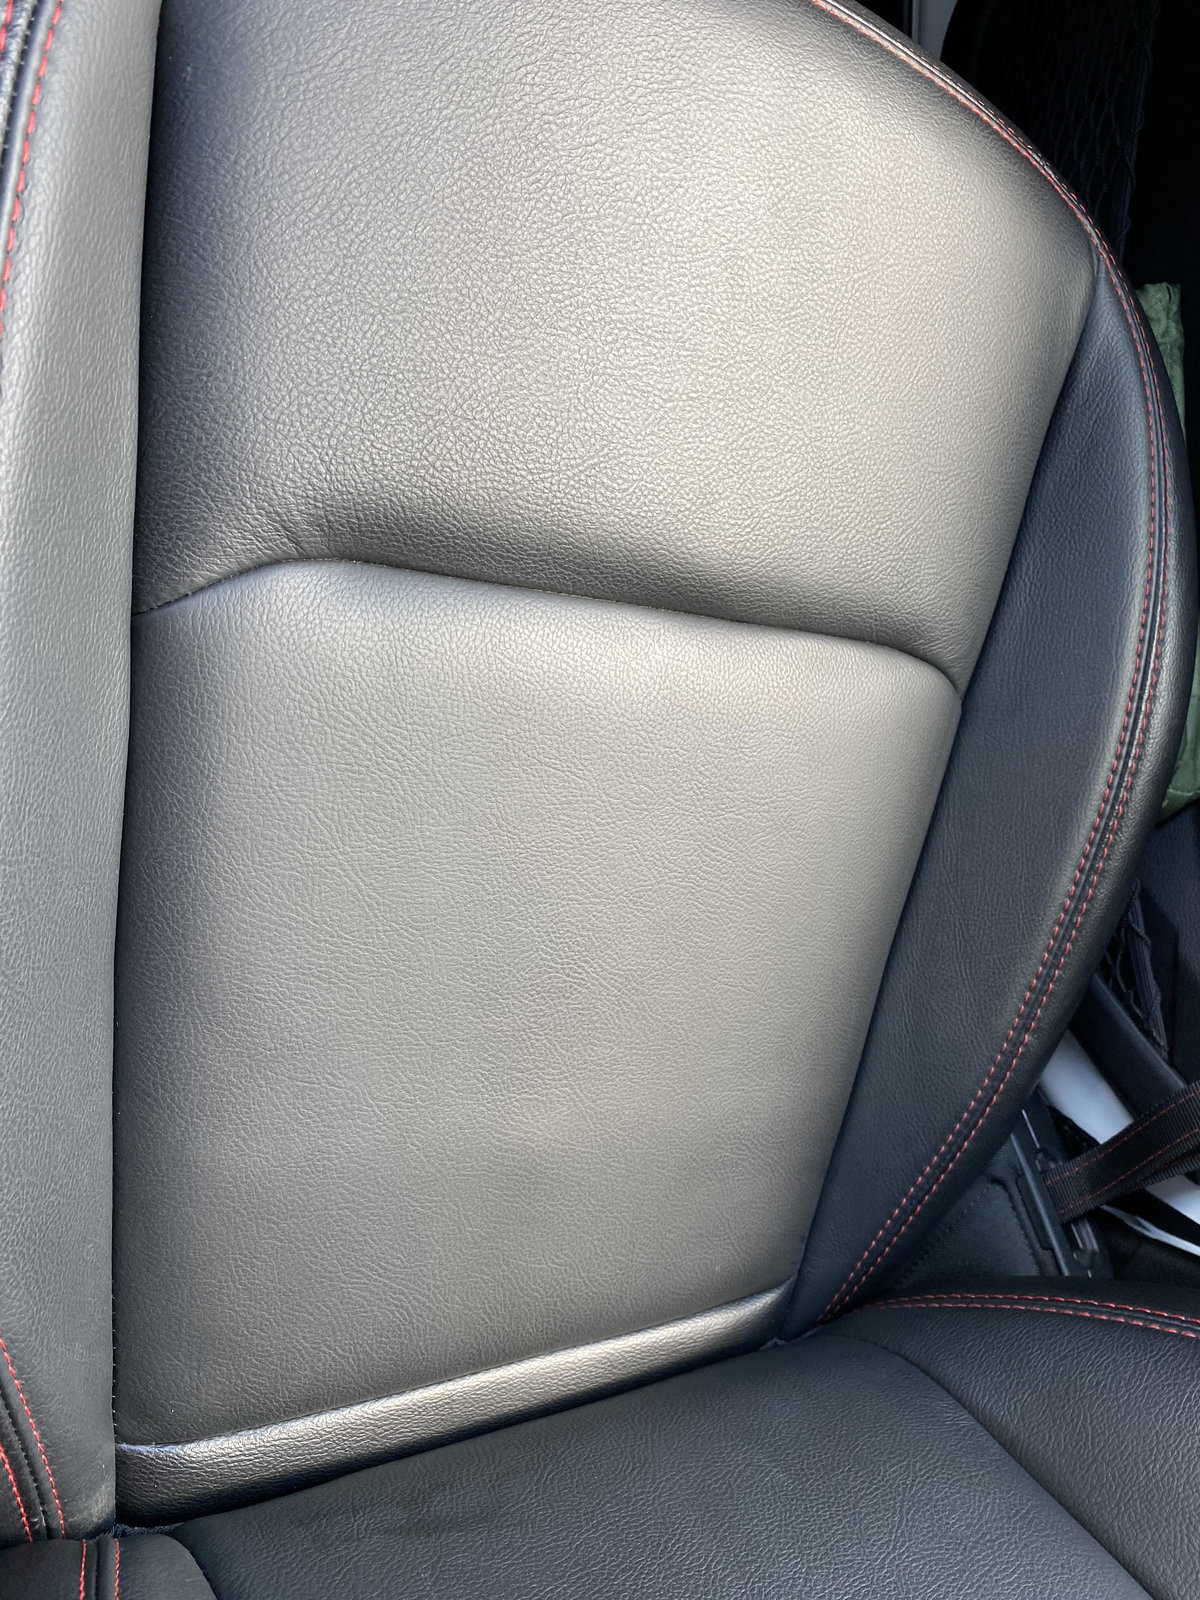 Leather Seat Clean.jpg